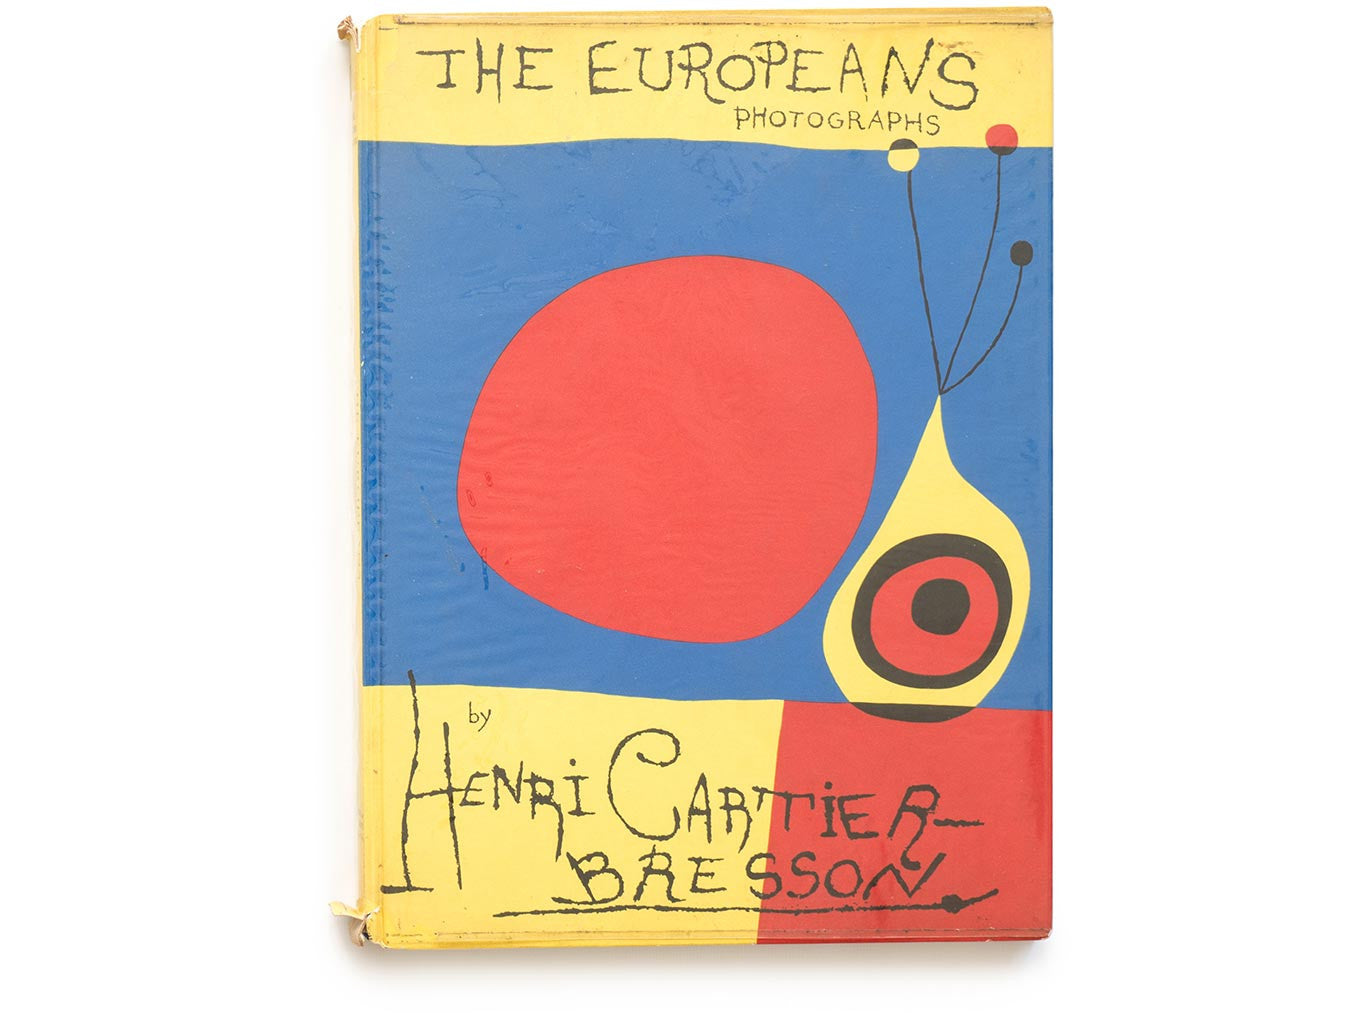 The Europeans – 1st Edition, 1955